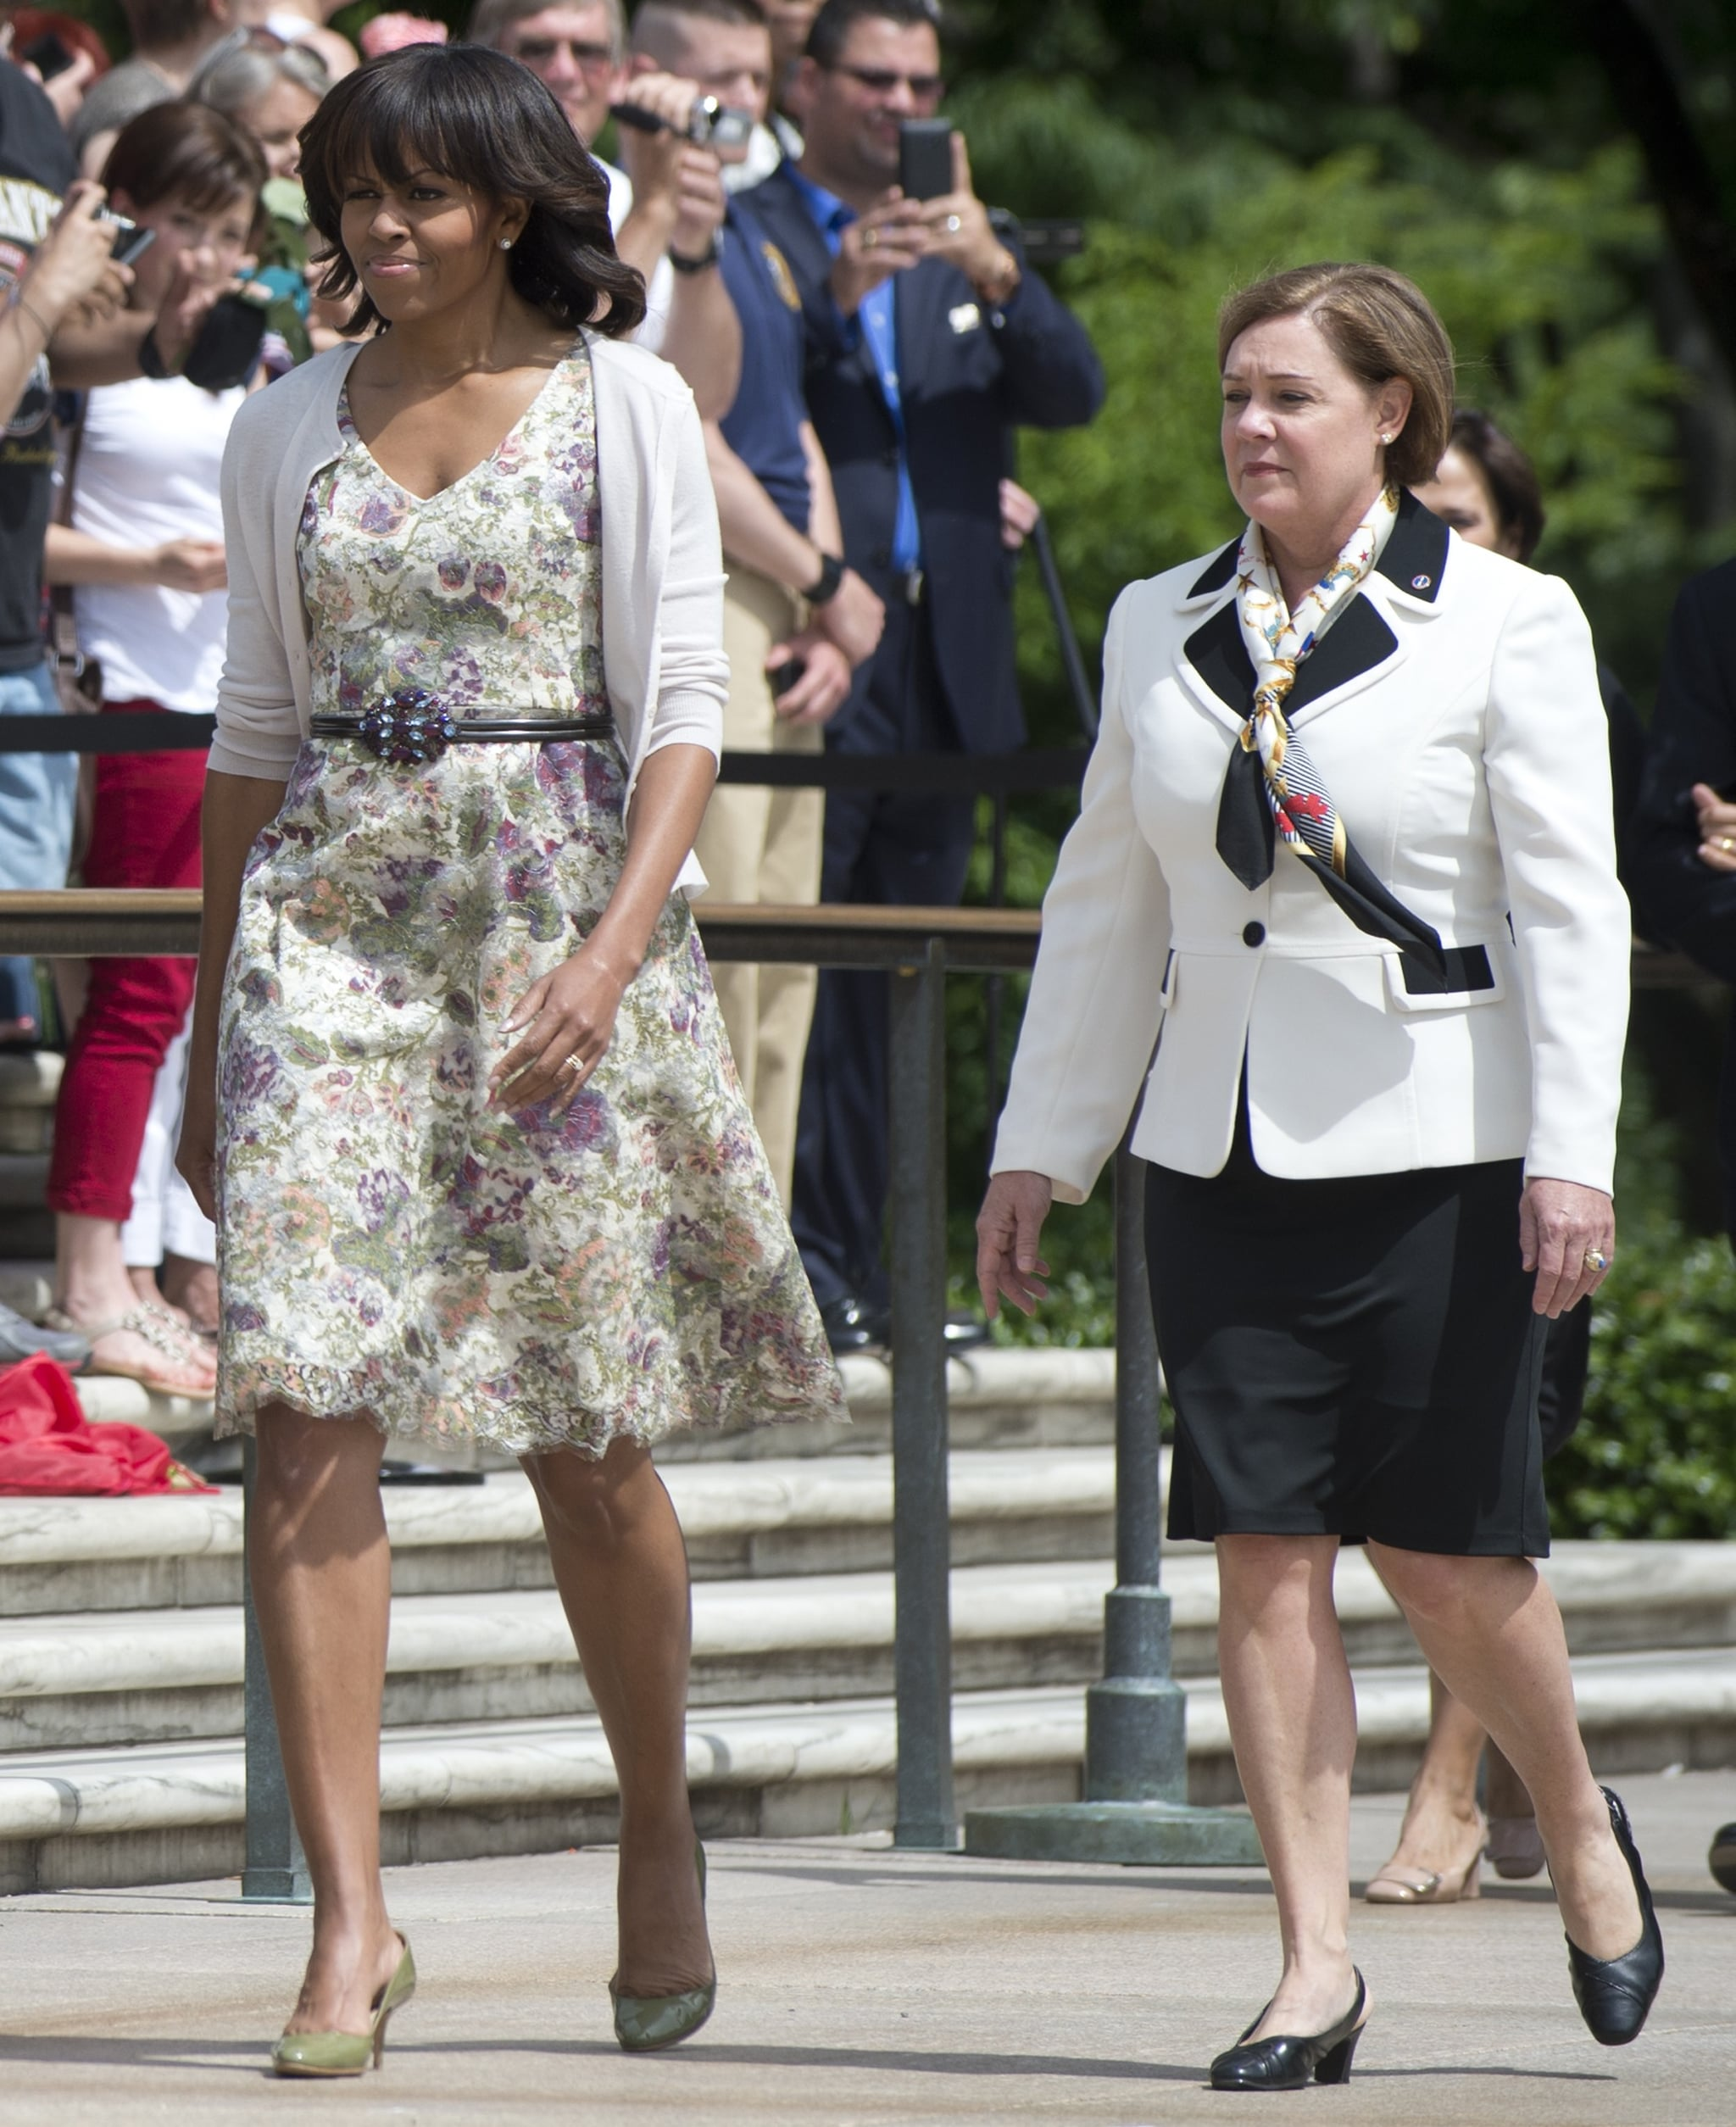 For a Memorial Day appearance at Arlington National Cemetery, Michelle outfitted a floral-print dress with a cardigan and an embellished belt.